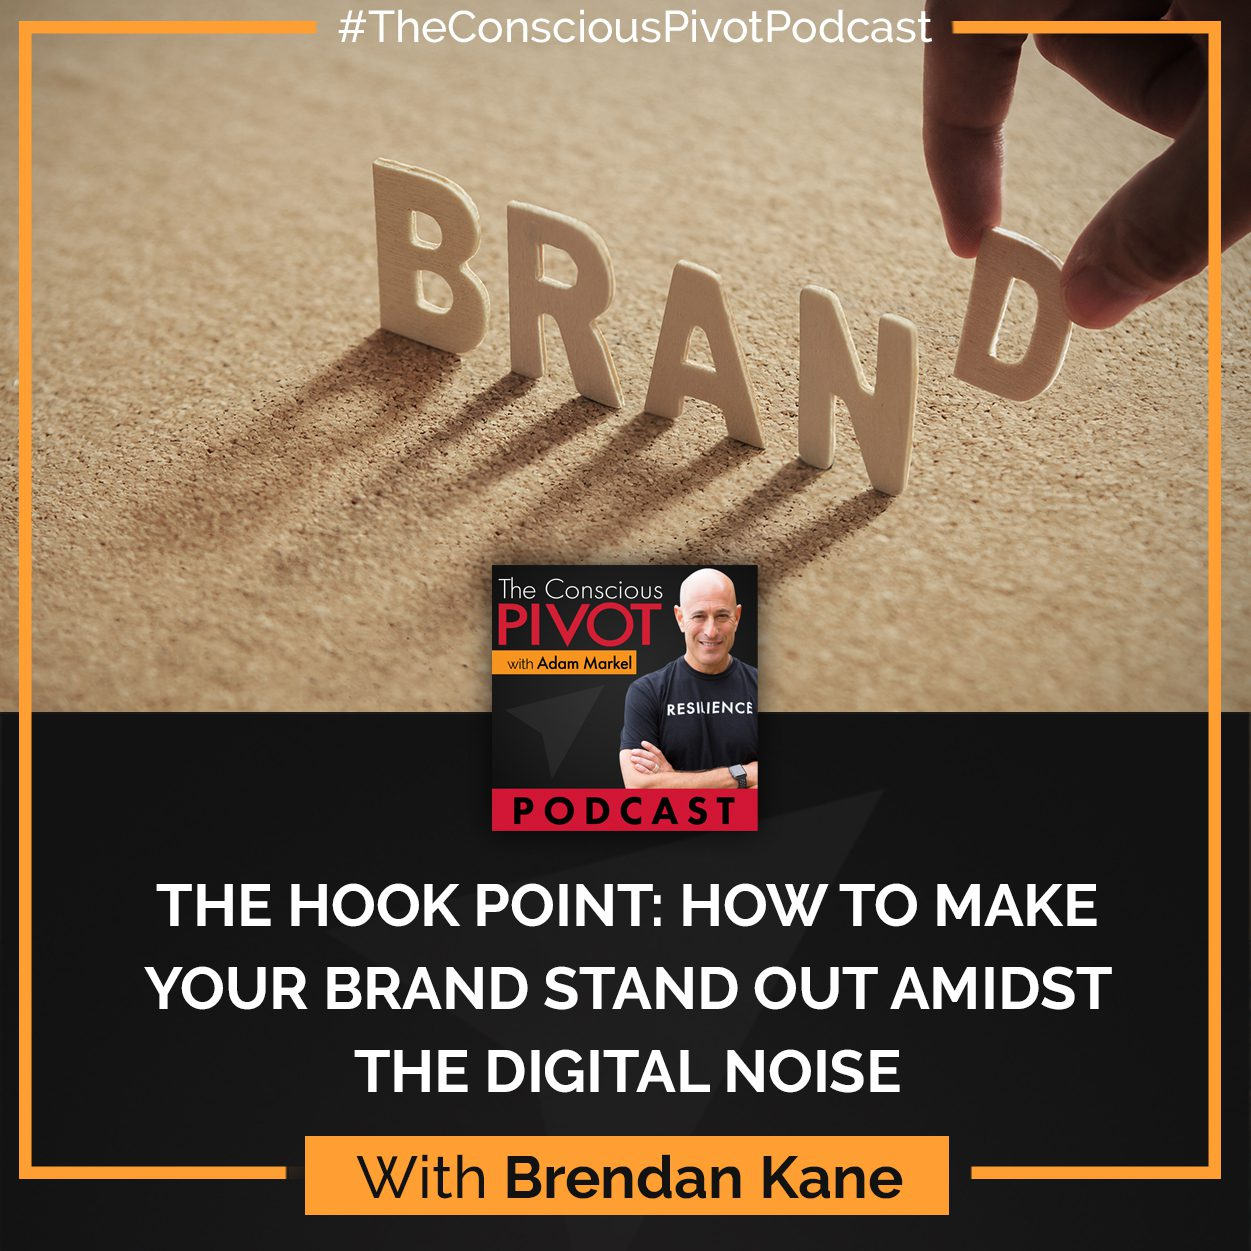 The Hook Point: How To Make Your Brand Stand Out Amidst The Digital Noise With Brendan Kane